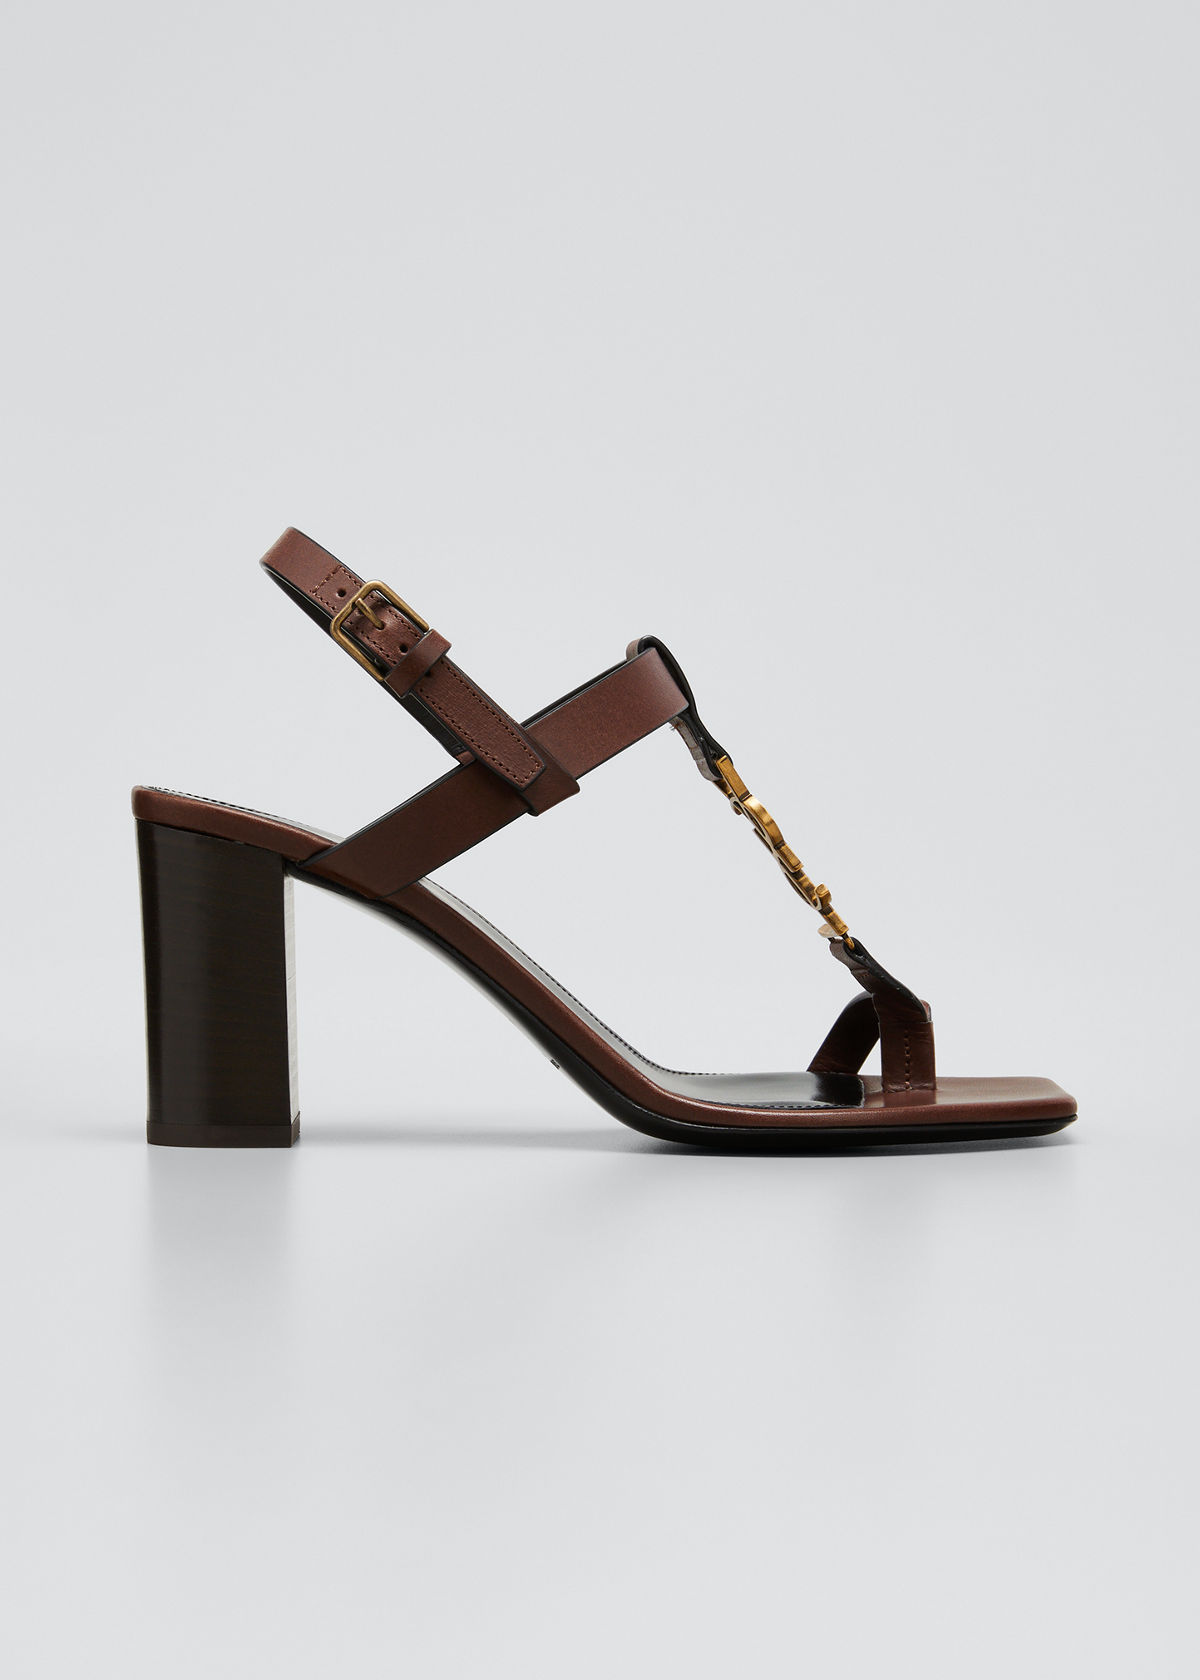 Saint Laurent CASSANDRA 75MM YSL SLINGBACK SANDALS